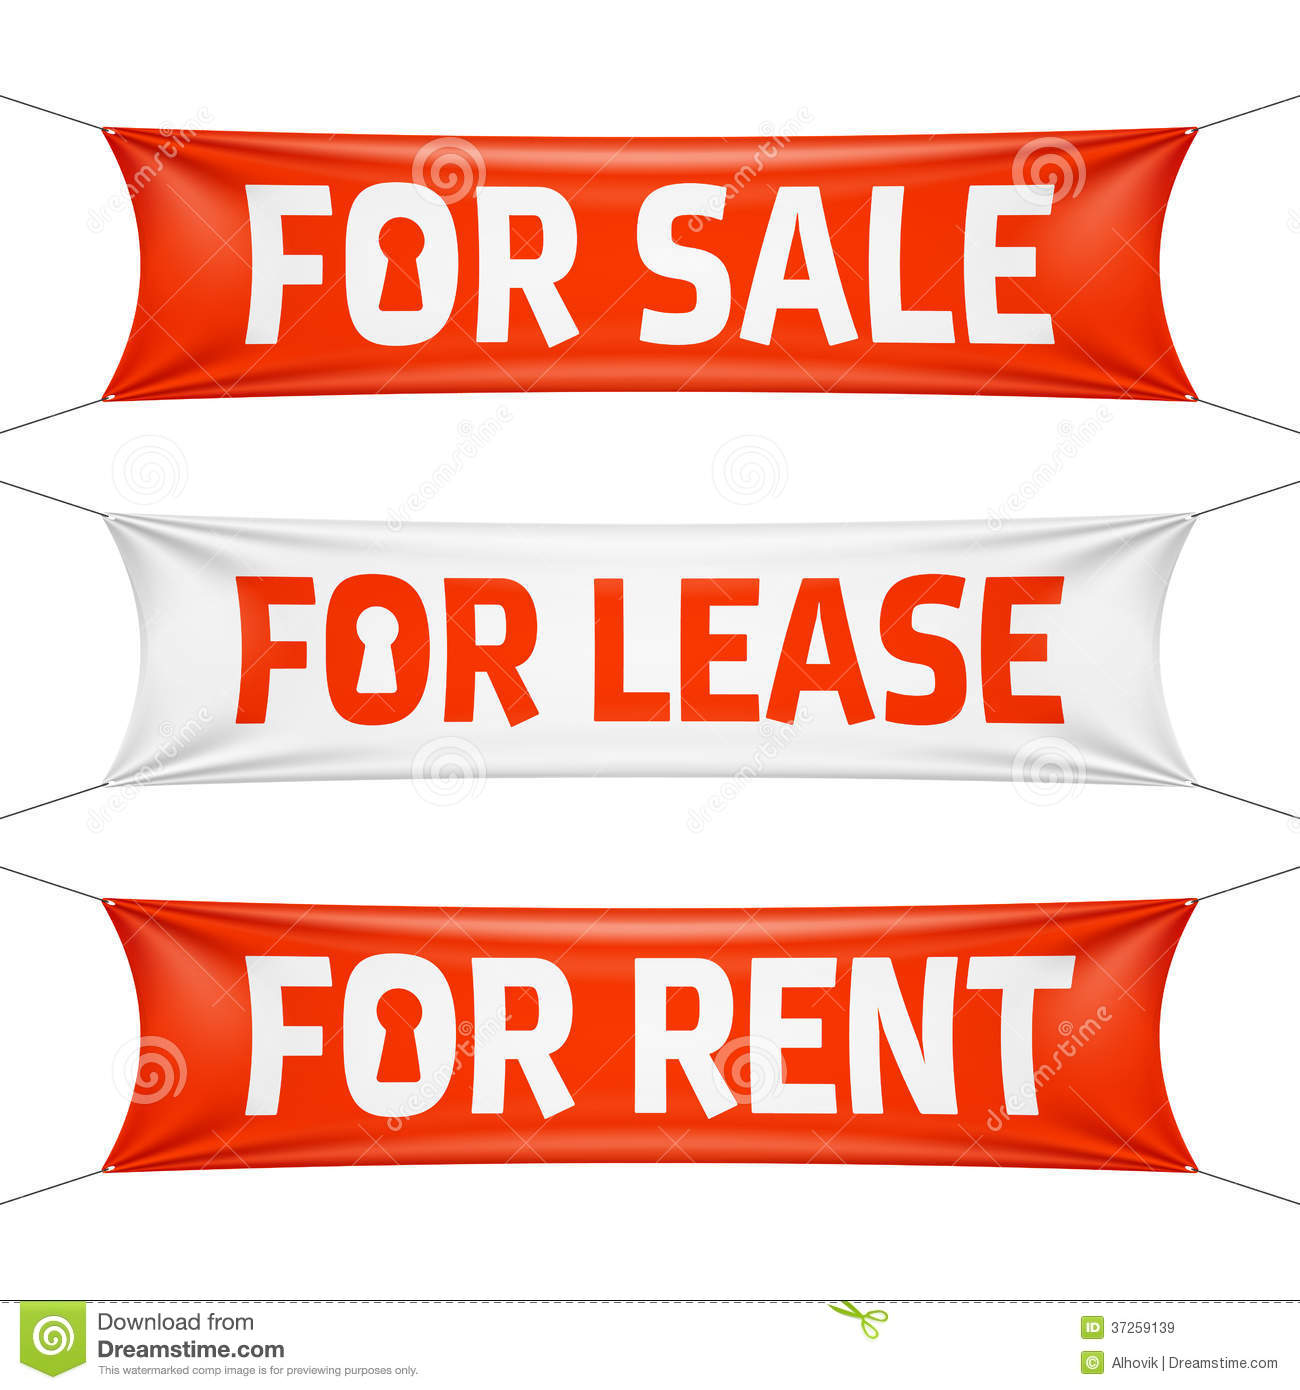 For Rental: Fore Sale, For Lease And For Rent Banners Stock Vector